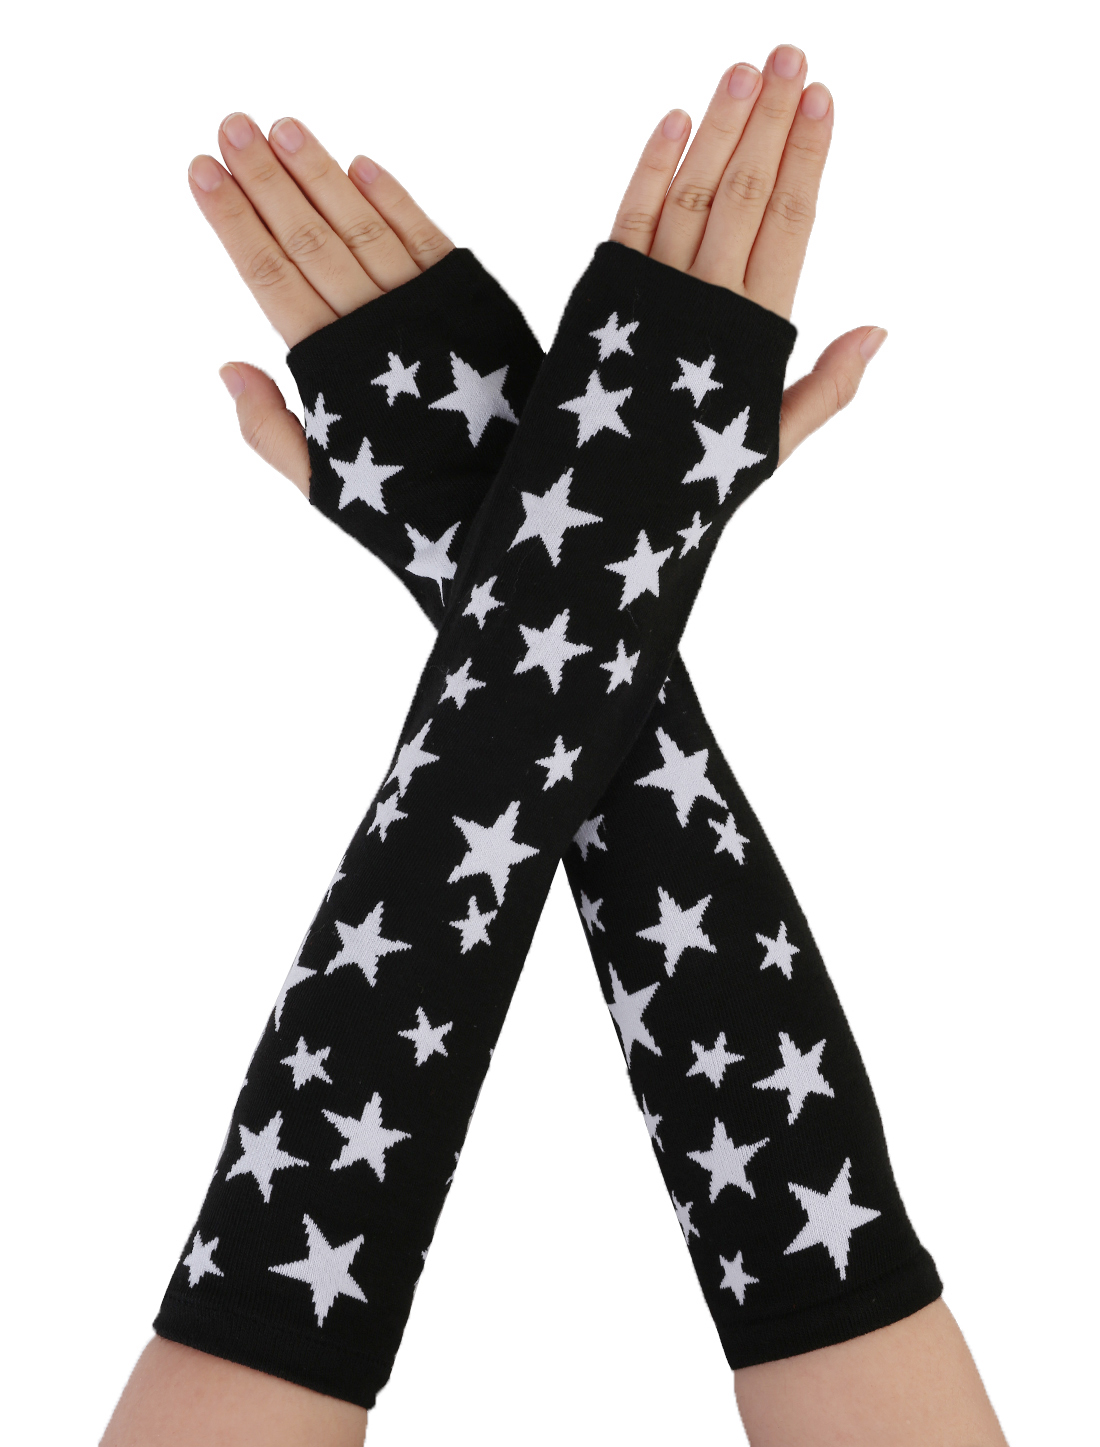 Pair Lady White Stars Print Black Knitted Elastic Arm Warmers Gloves